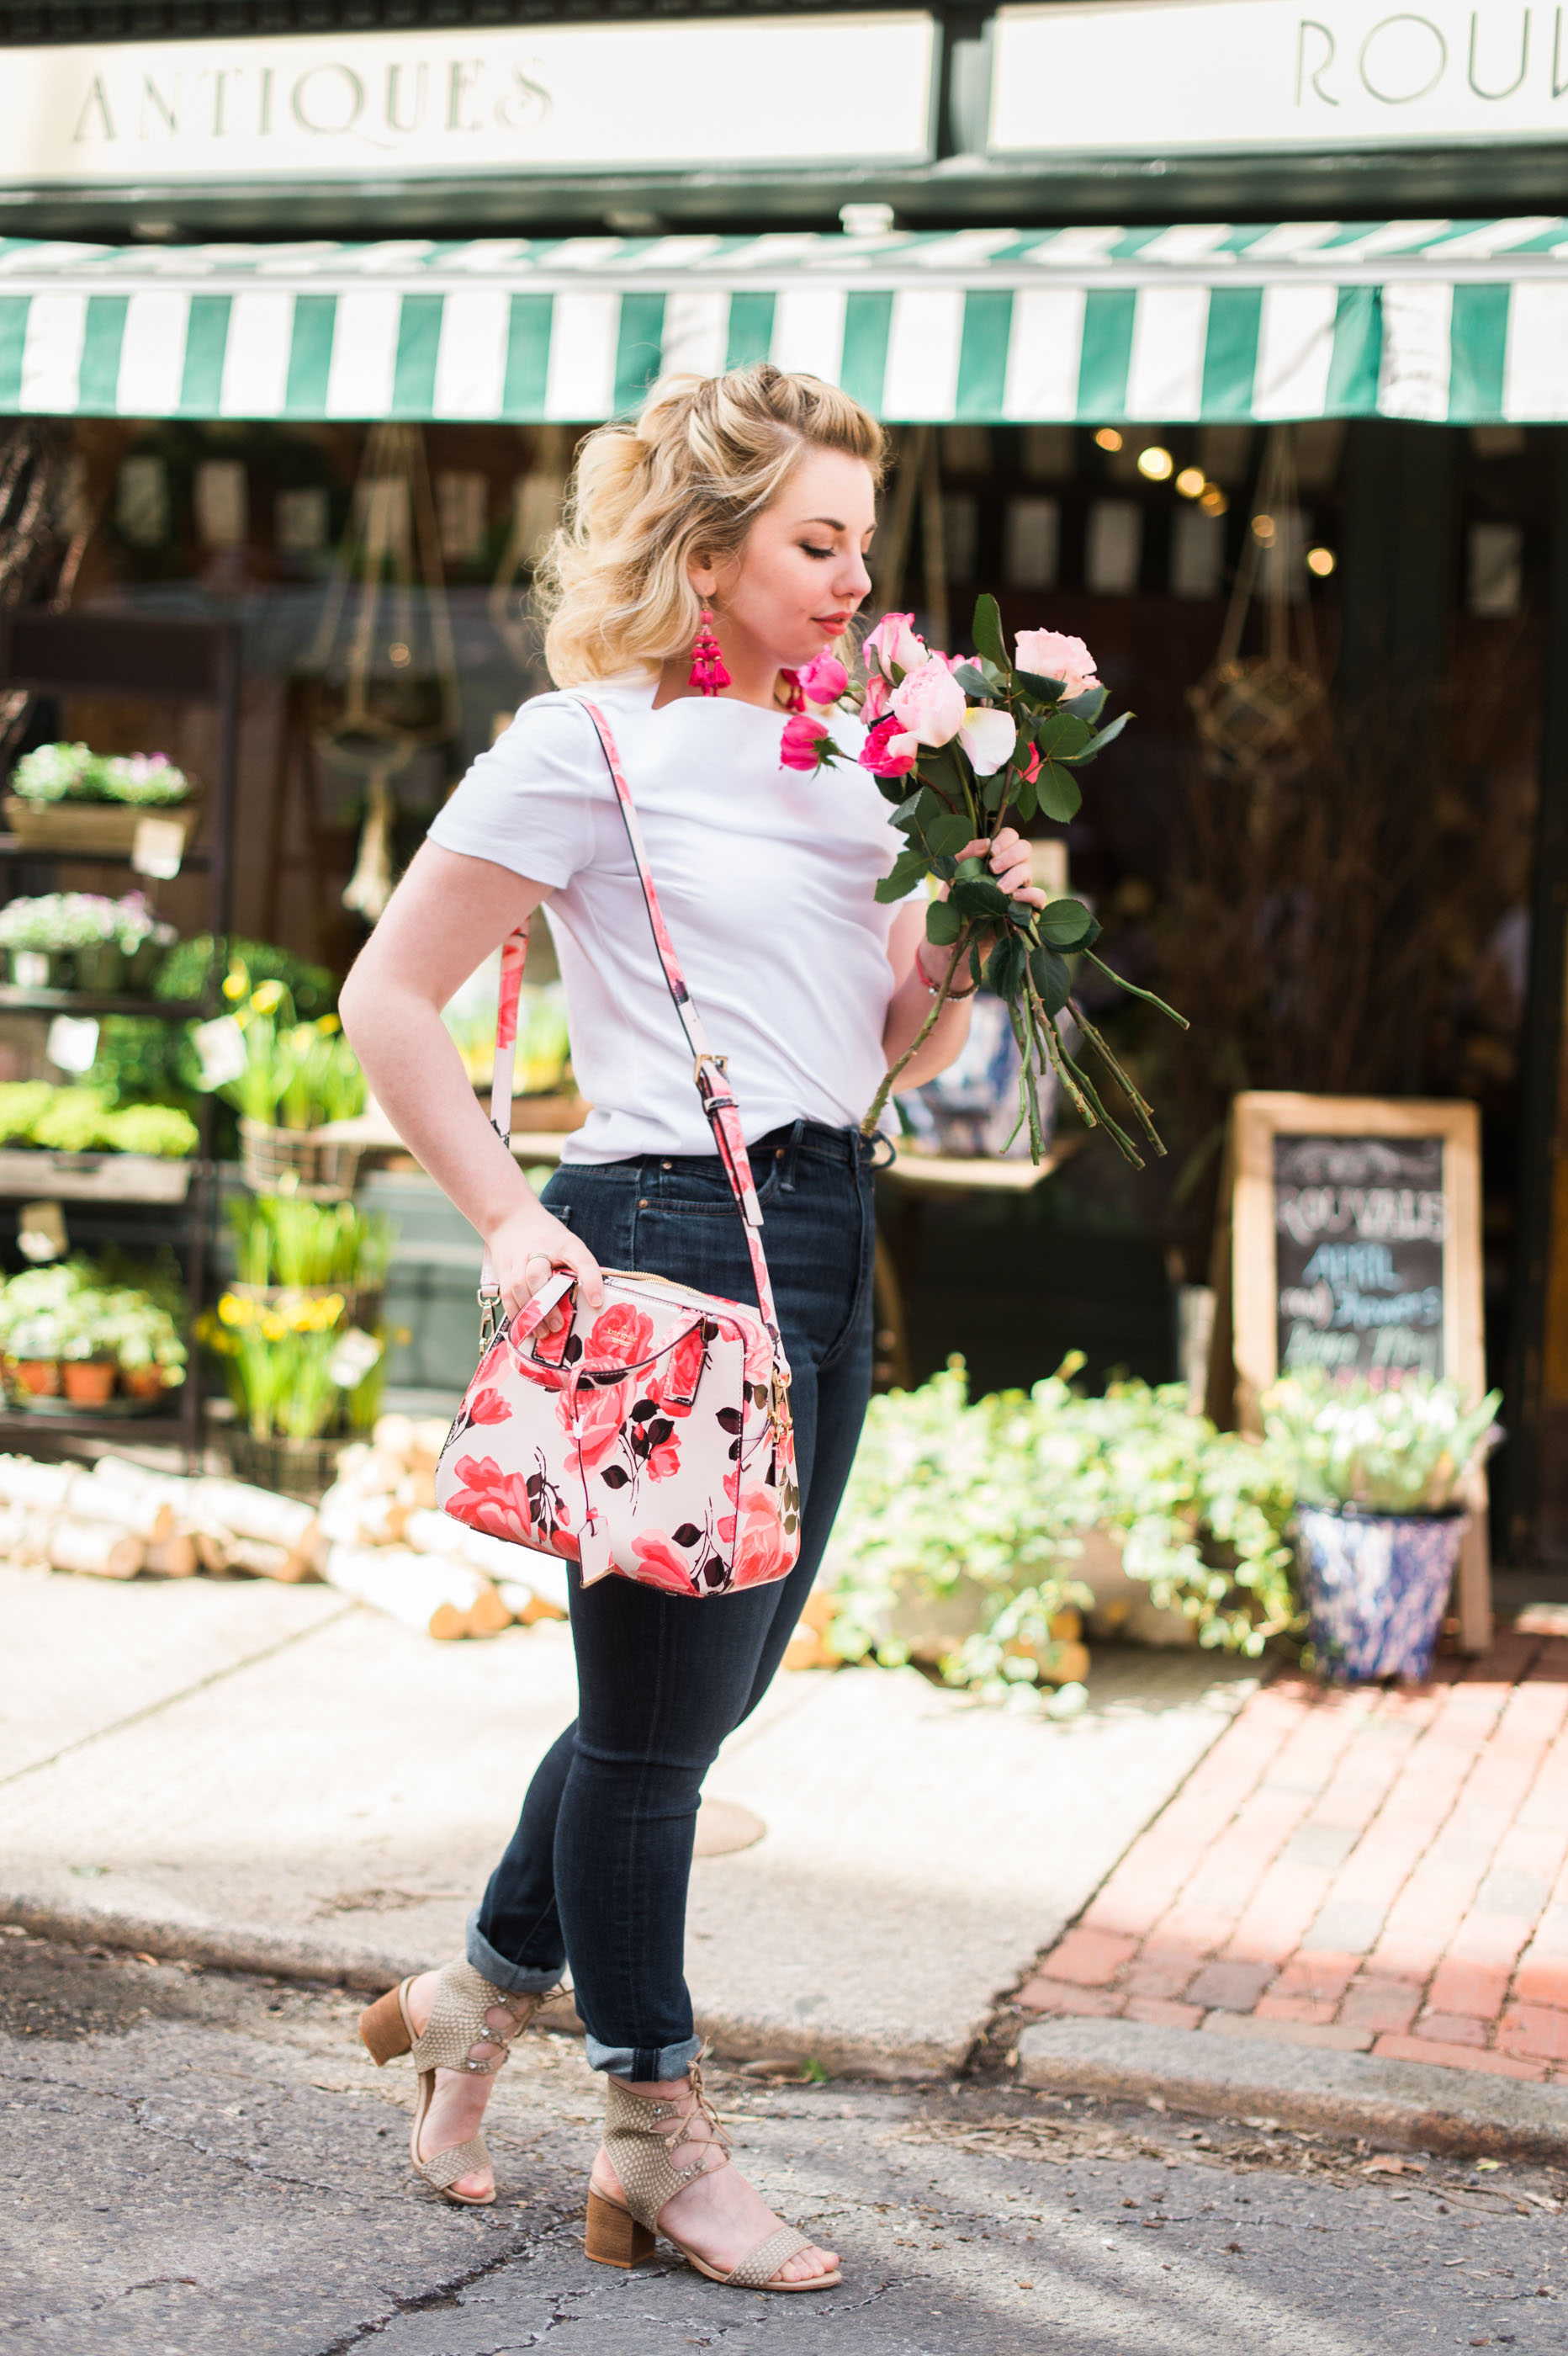 A Rose Print Purse | To The 9s: Navigating Fashion & Style